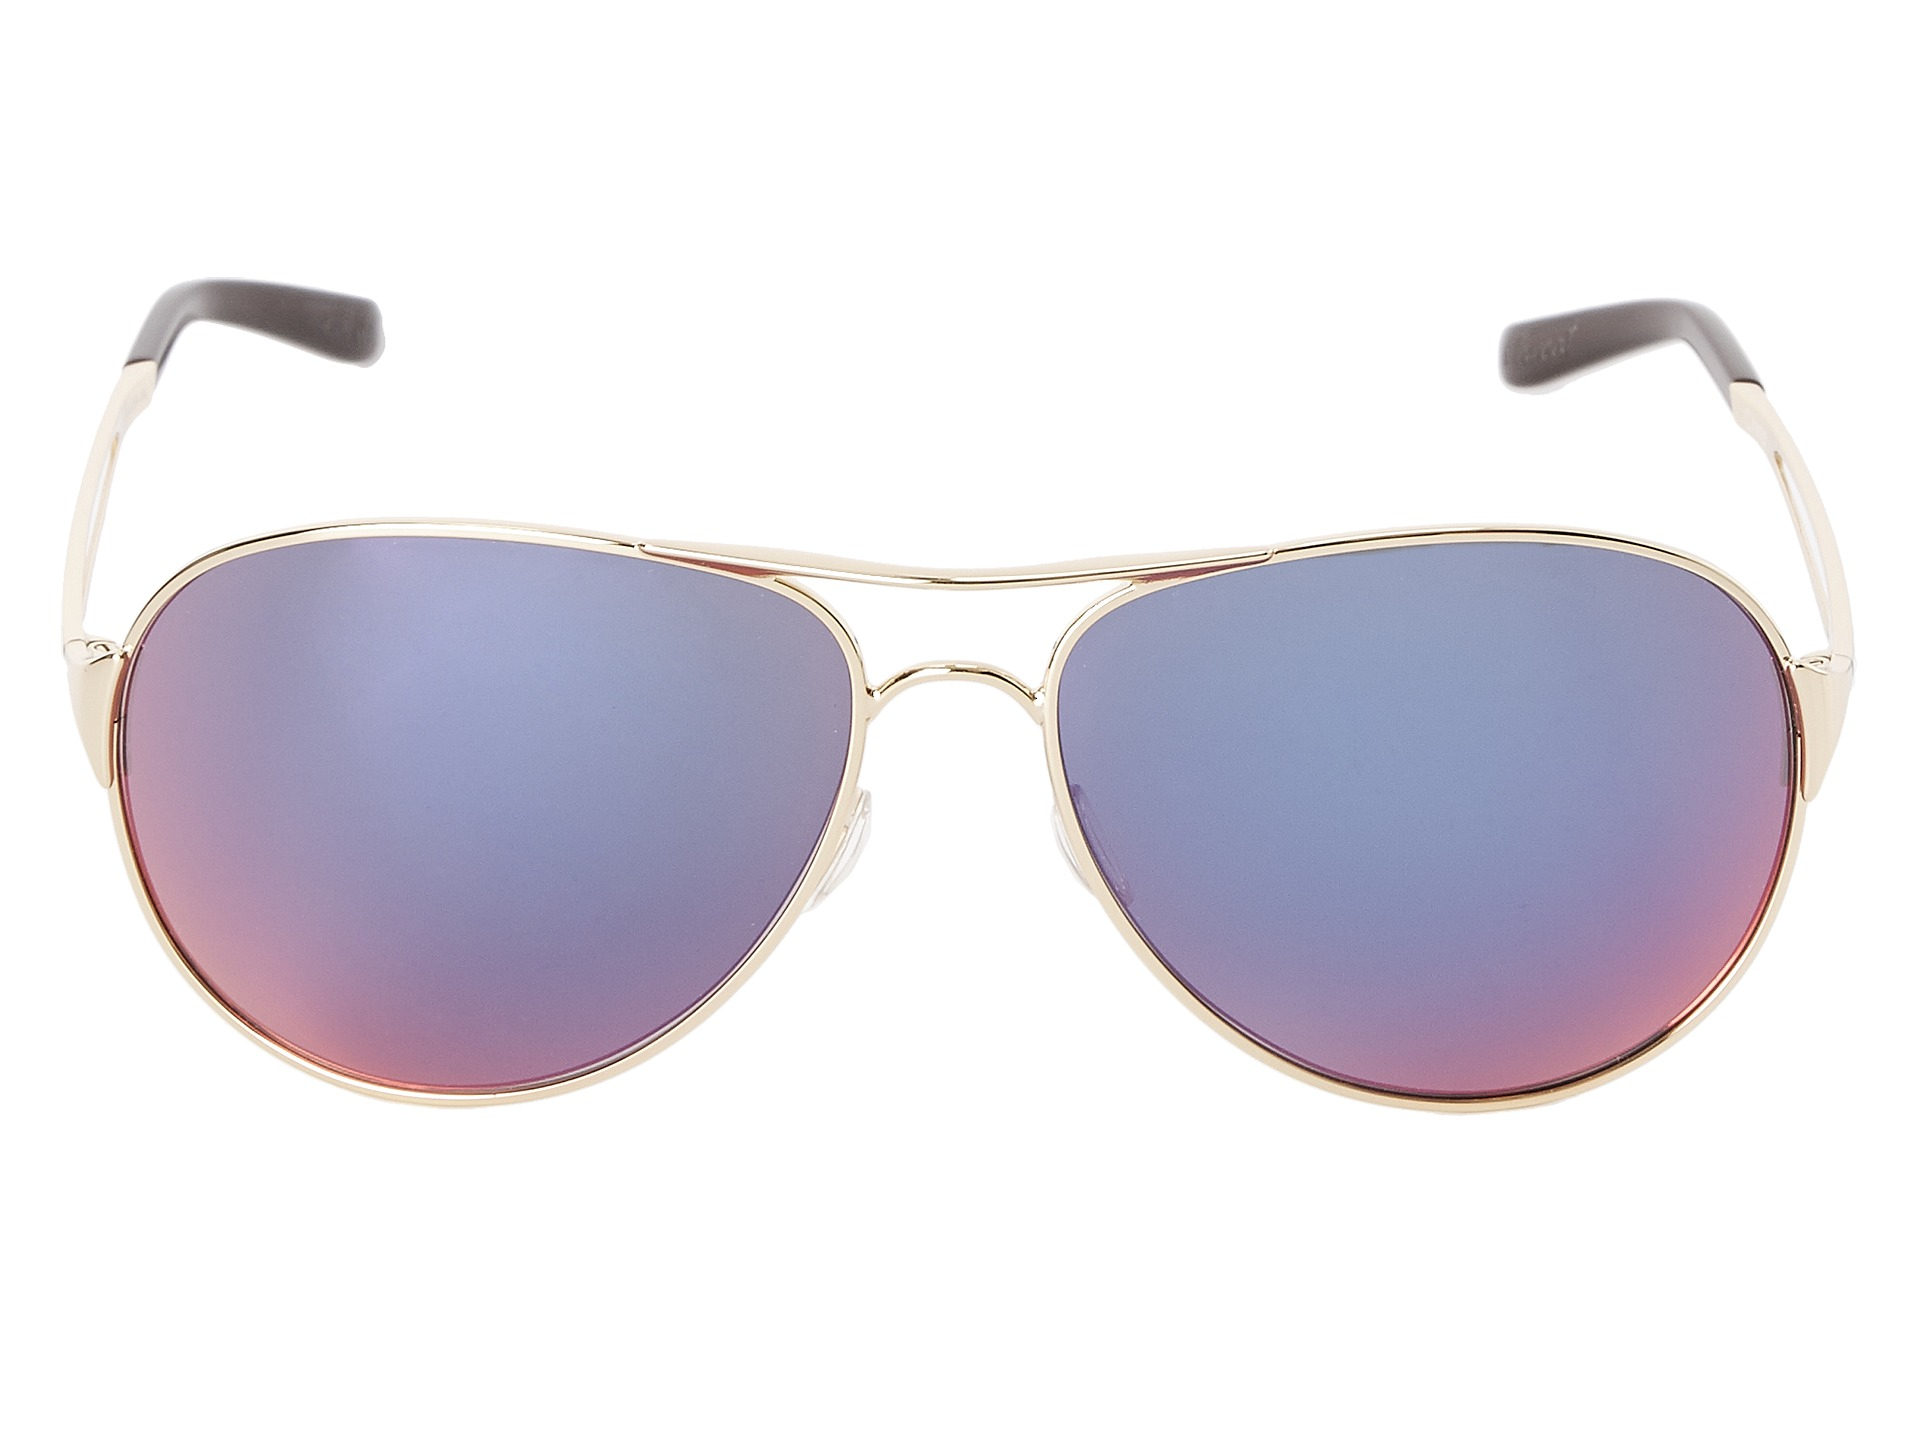 8678b7d58dc35 Gallery. Previously sold at  Zappos · Women s Ray Ban ...